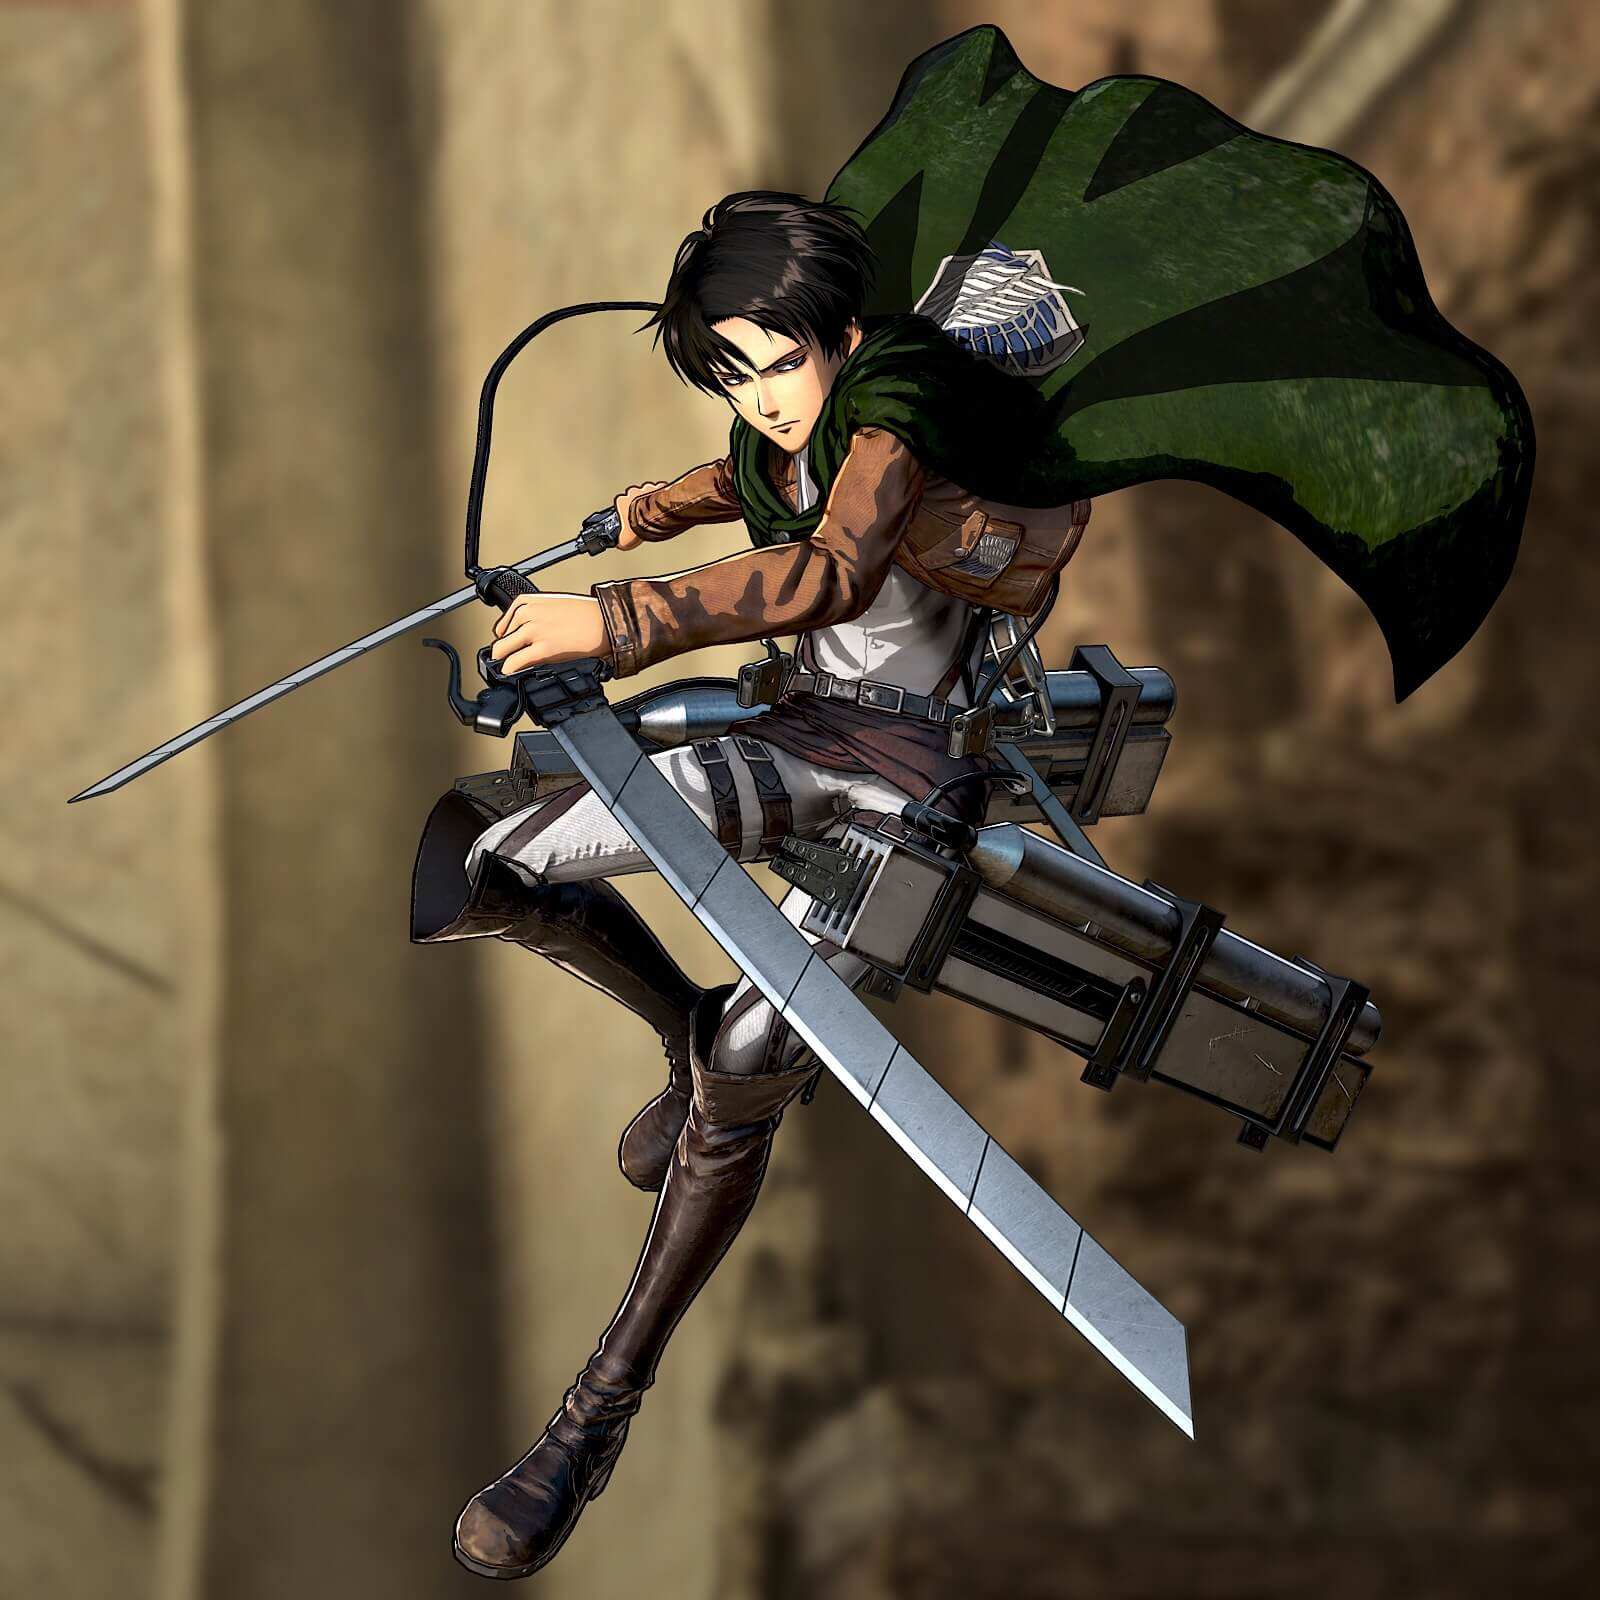 Attack On Titan 2 Details: Attack On Titan 2 Character List And Screenshots Released